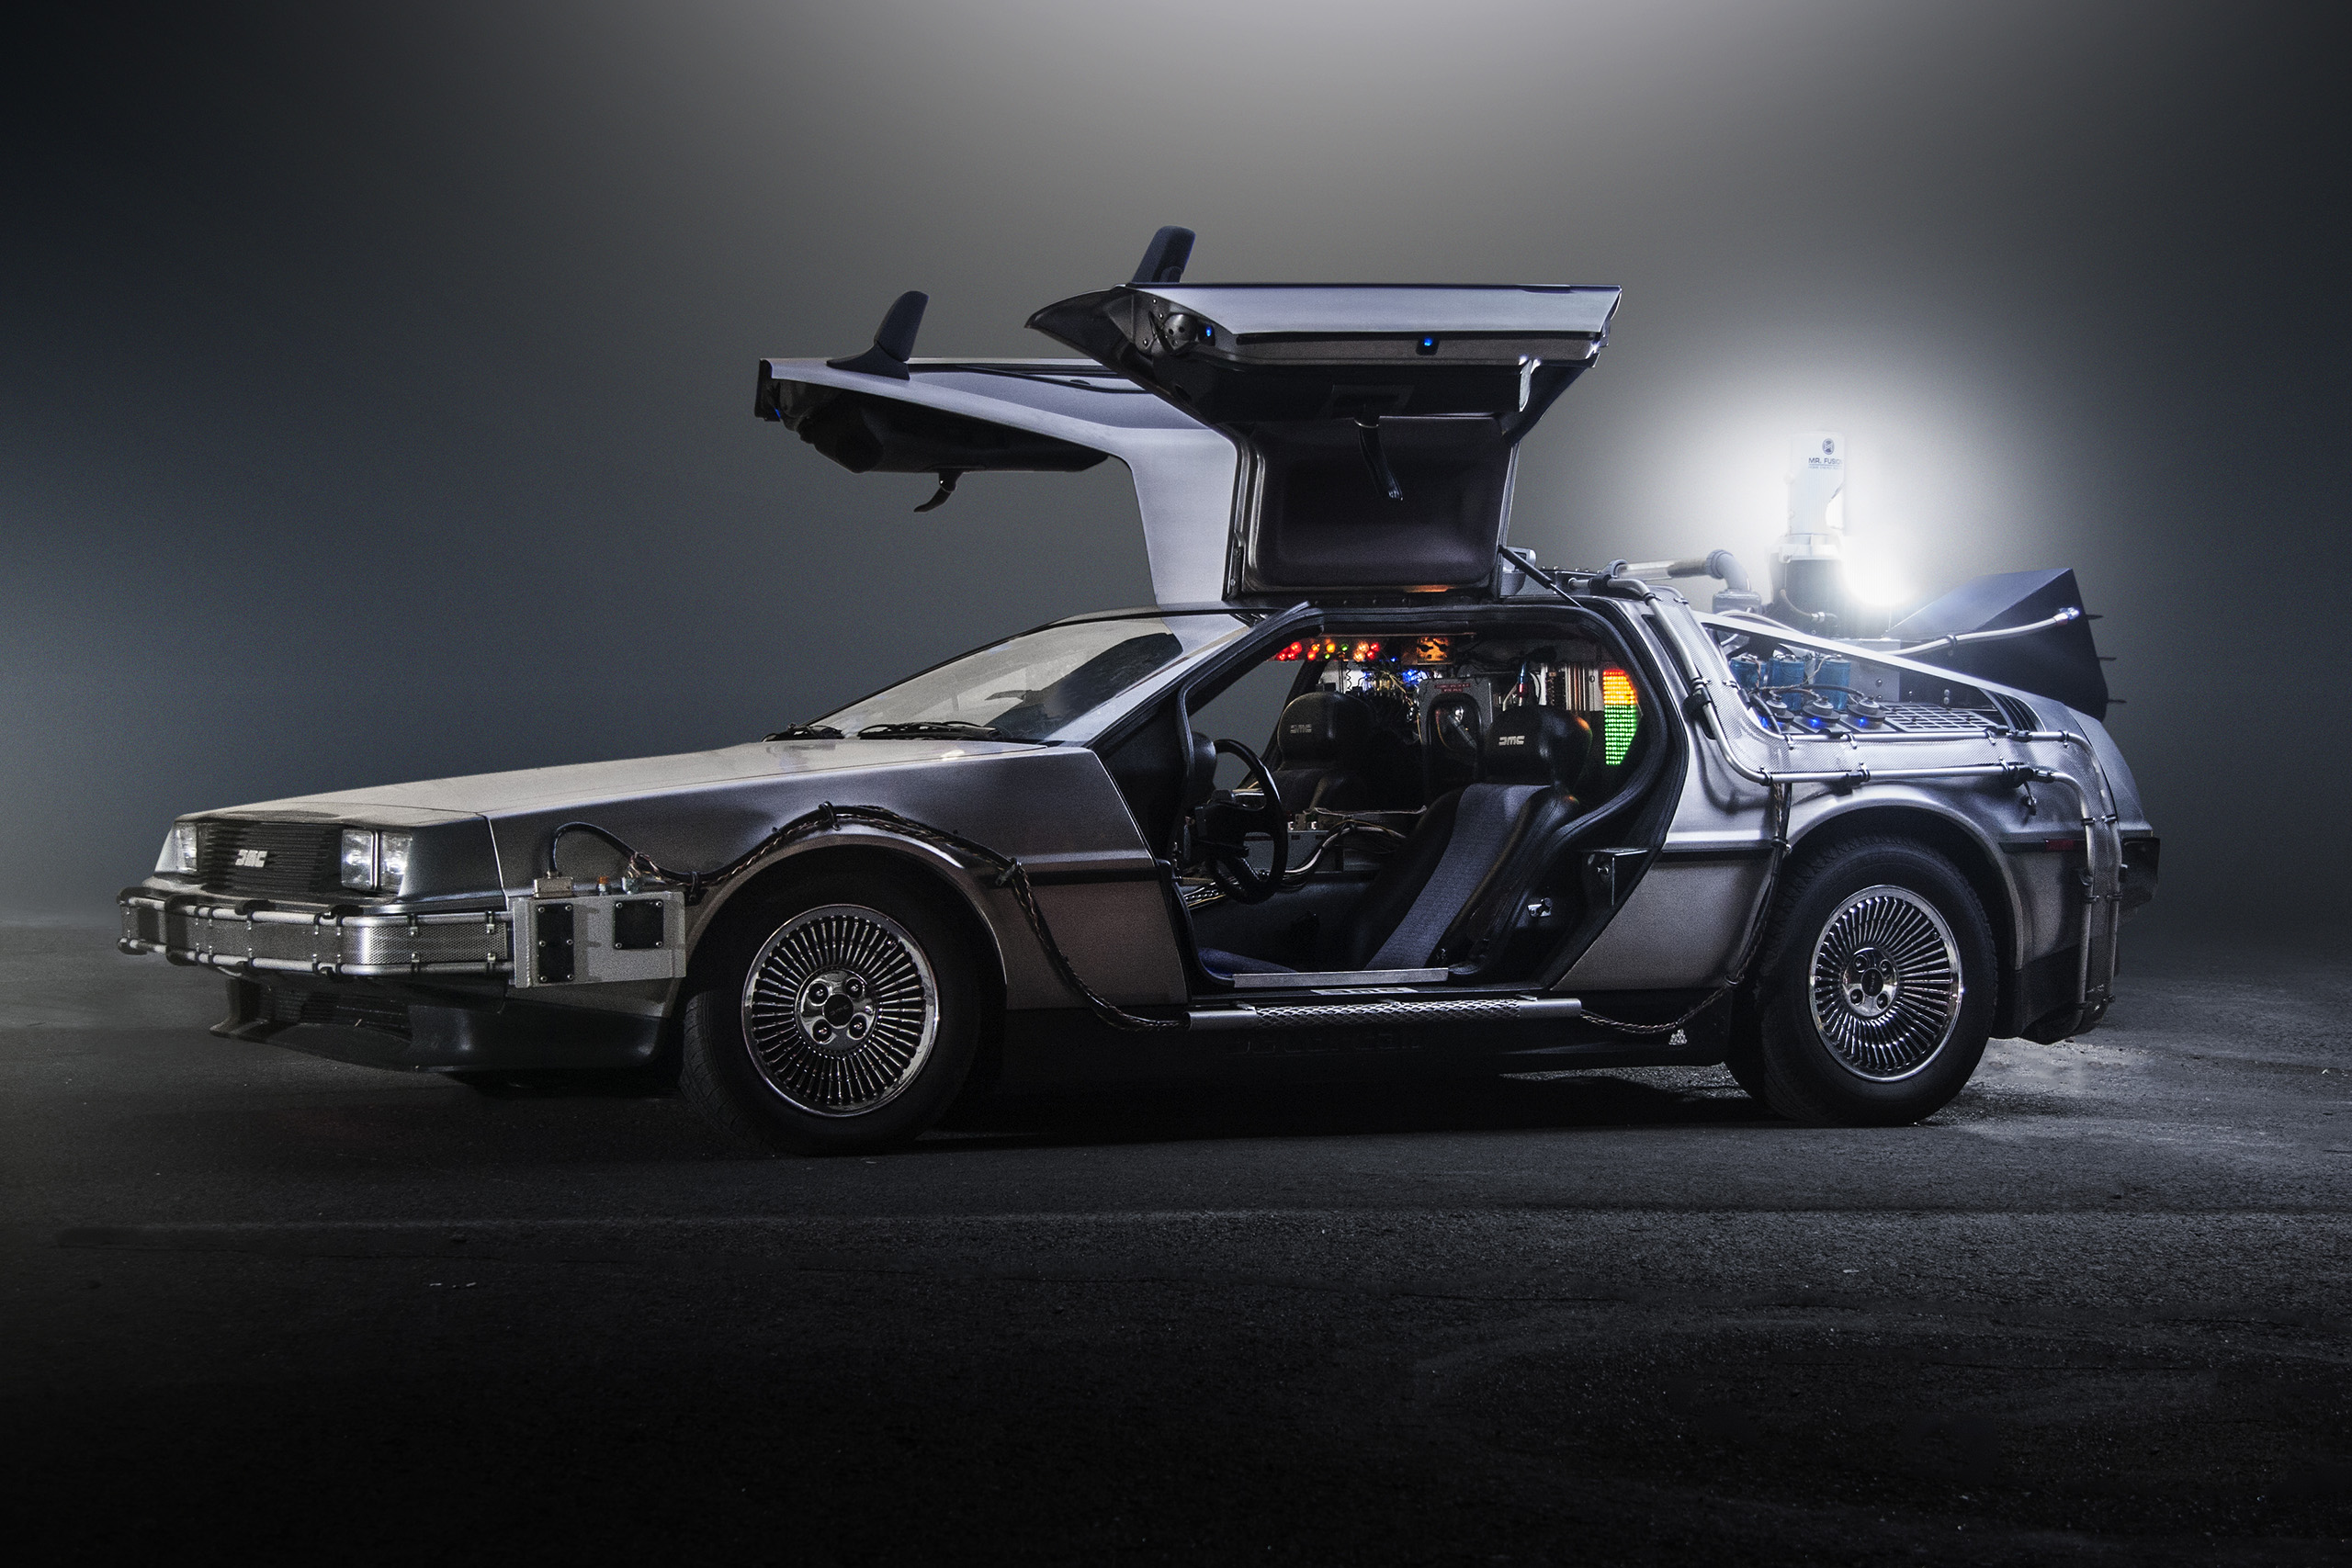 Time Machine High Quality Background on Wallpapers Vista